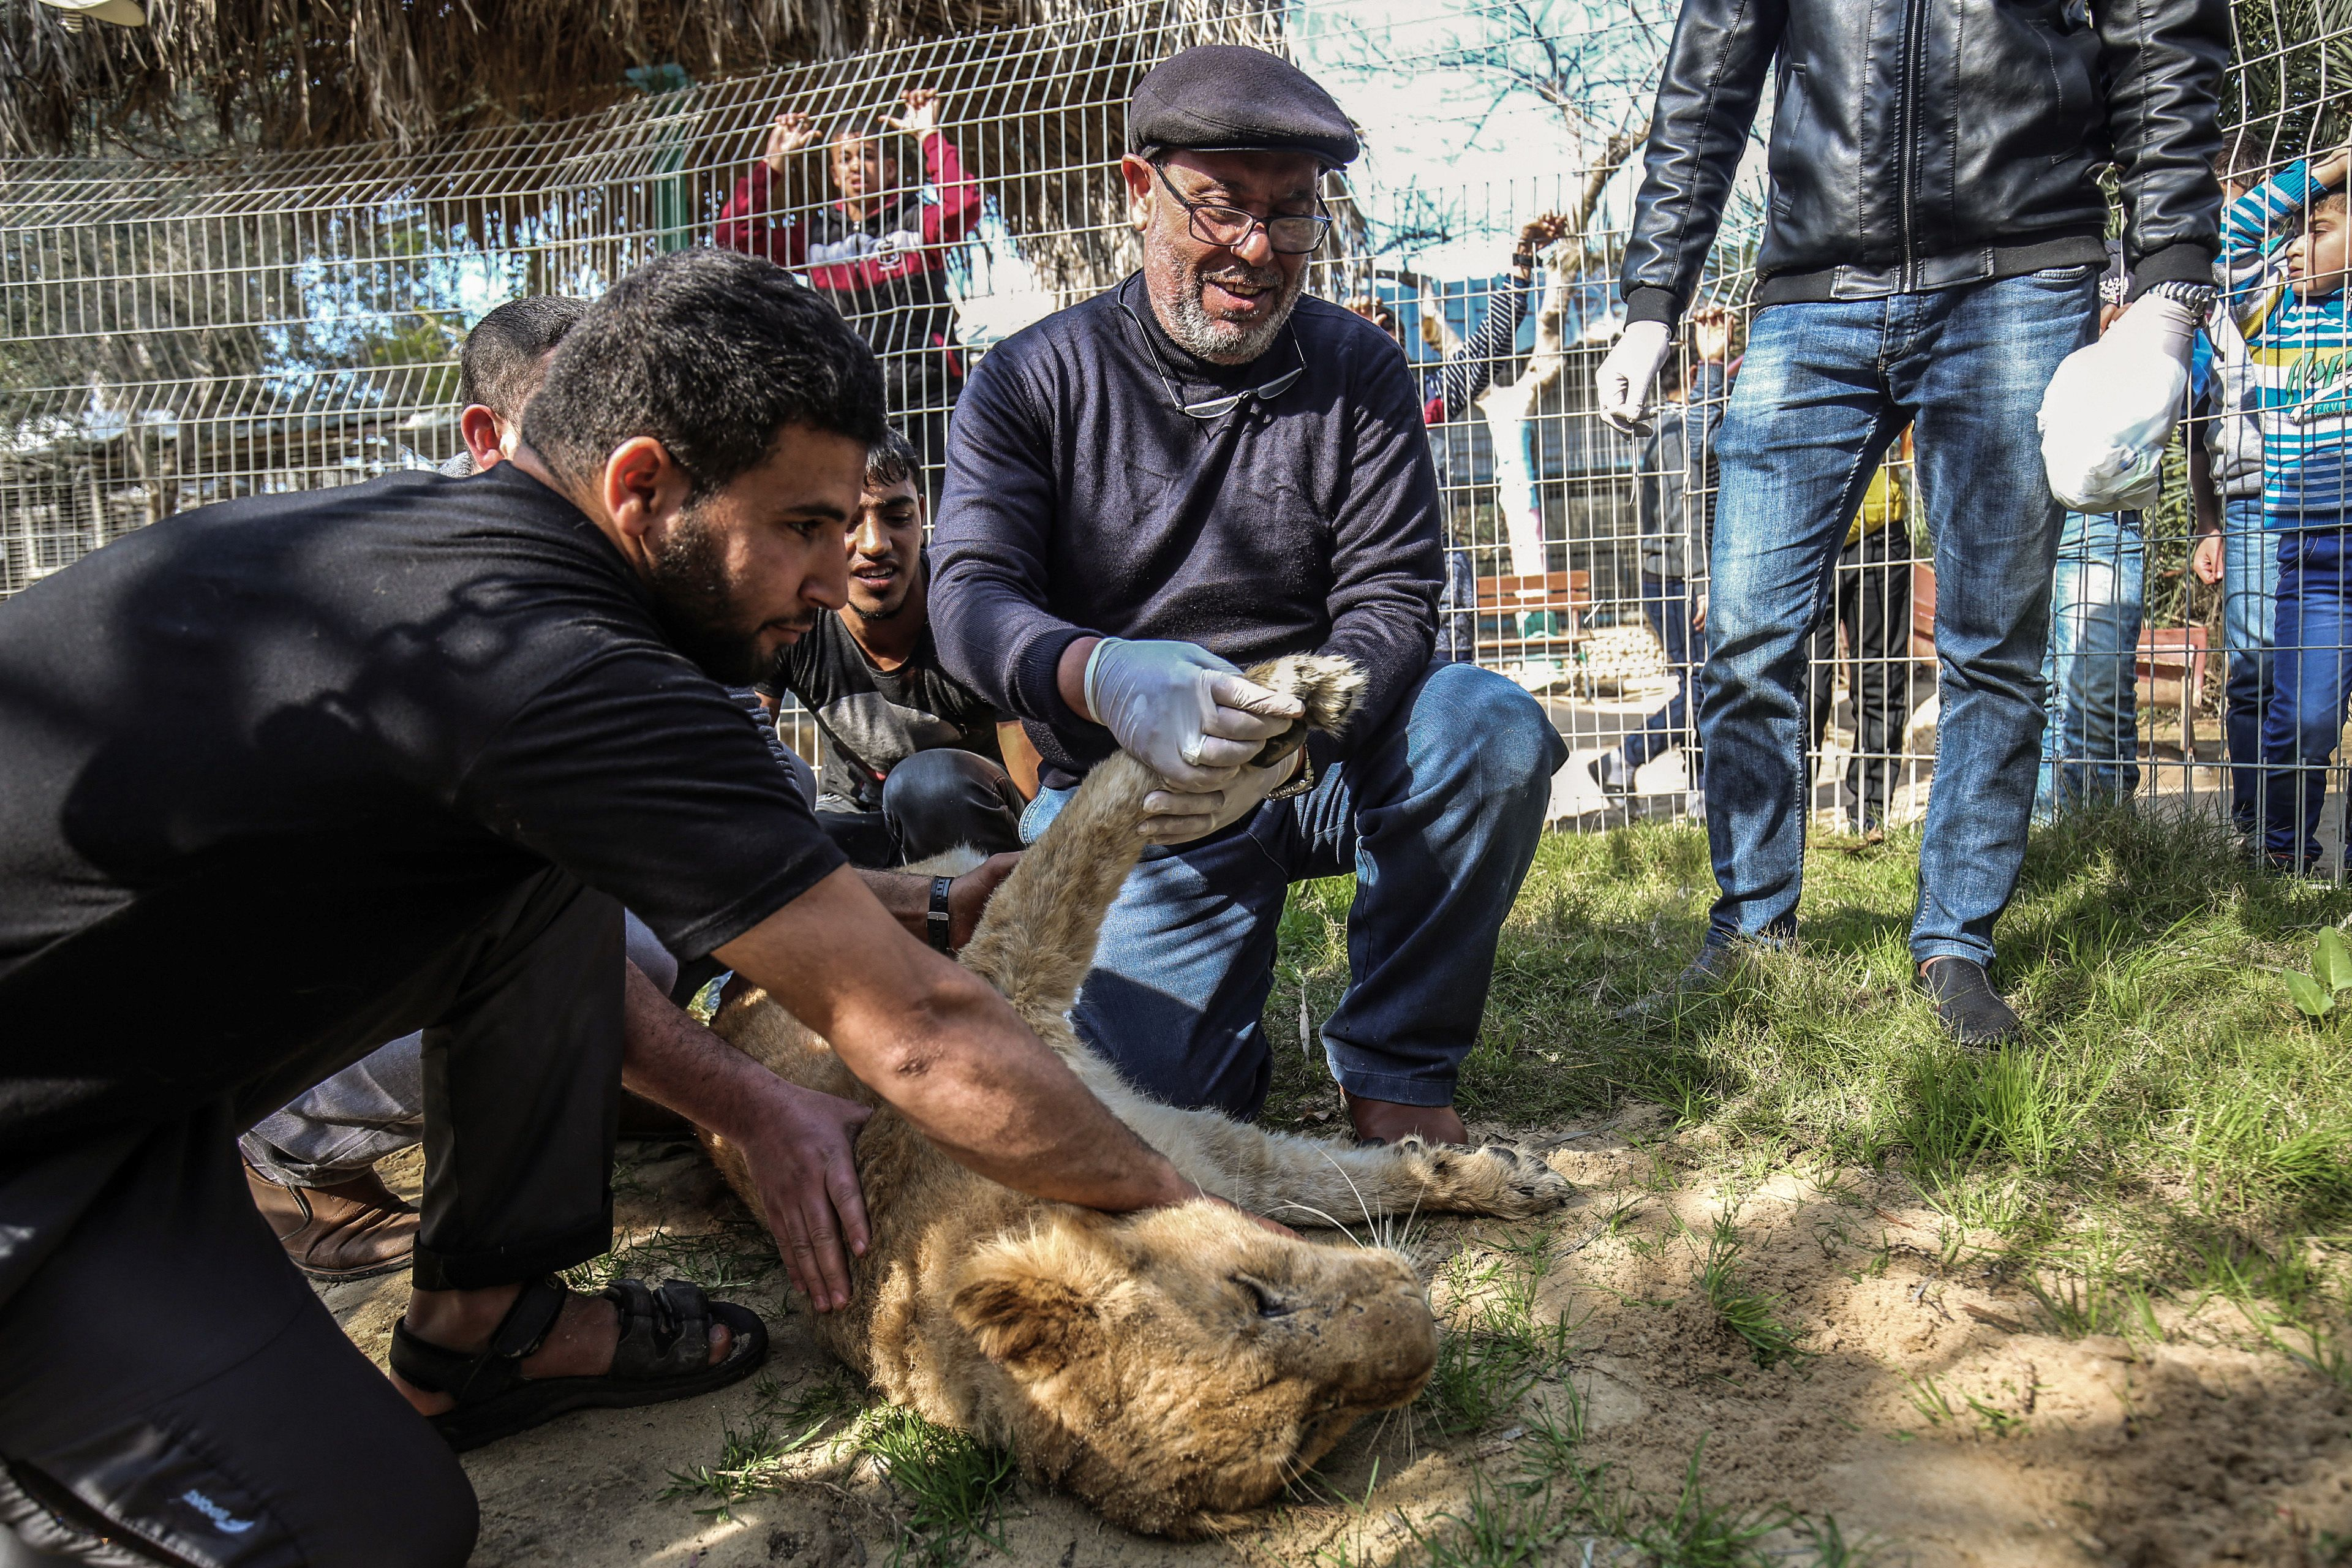 Palestinian veterinarian Fayyaz al-Haddad, holds the paw of the lioness 'Falestine' after being declawed, at the Rafah Zoo in the southern Gaza Strip on February 12, 2019. - The zoo in the war-battered Palestinian enclave is promoting itself as offering the chance to play with the 14-month-old declawed lioness, which is supposed to be placid enough to meet visitors. It is the latest unconventional animal care practice in Gaza where there is no specialized animal hospital with a few dilapidated zoos competing for business (Getty Images)